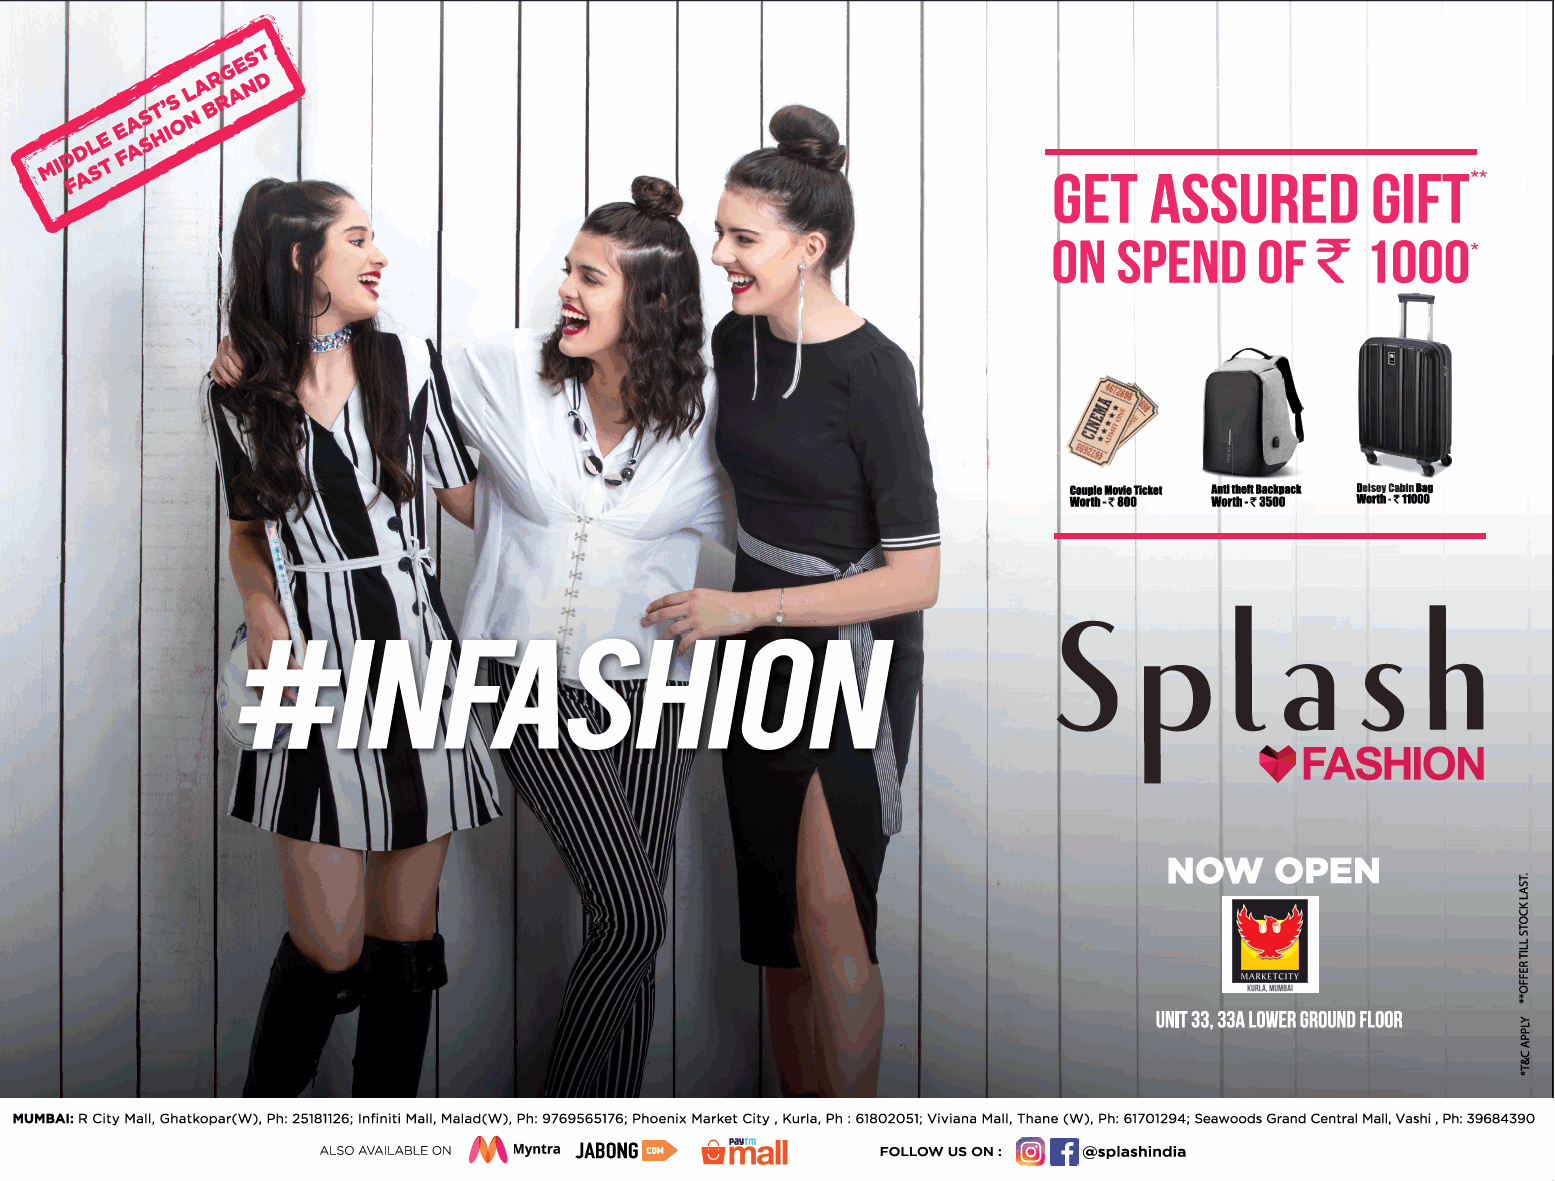 Spalsh Fashion Get Assured Gift On Spend Of Rs 1000 Ad Advert Gallery